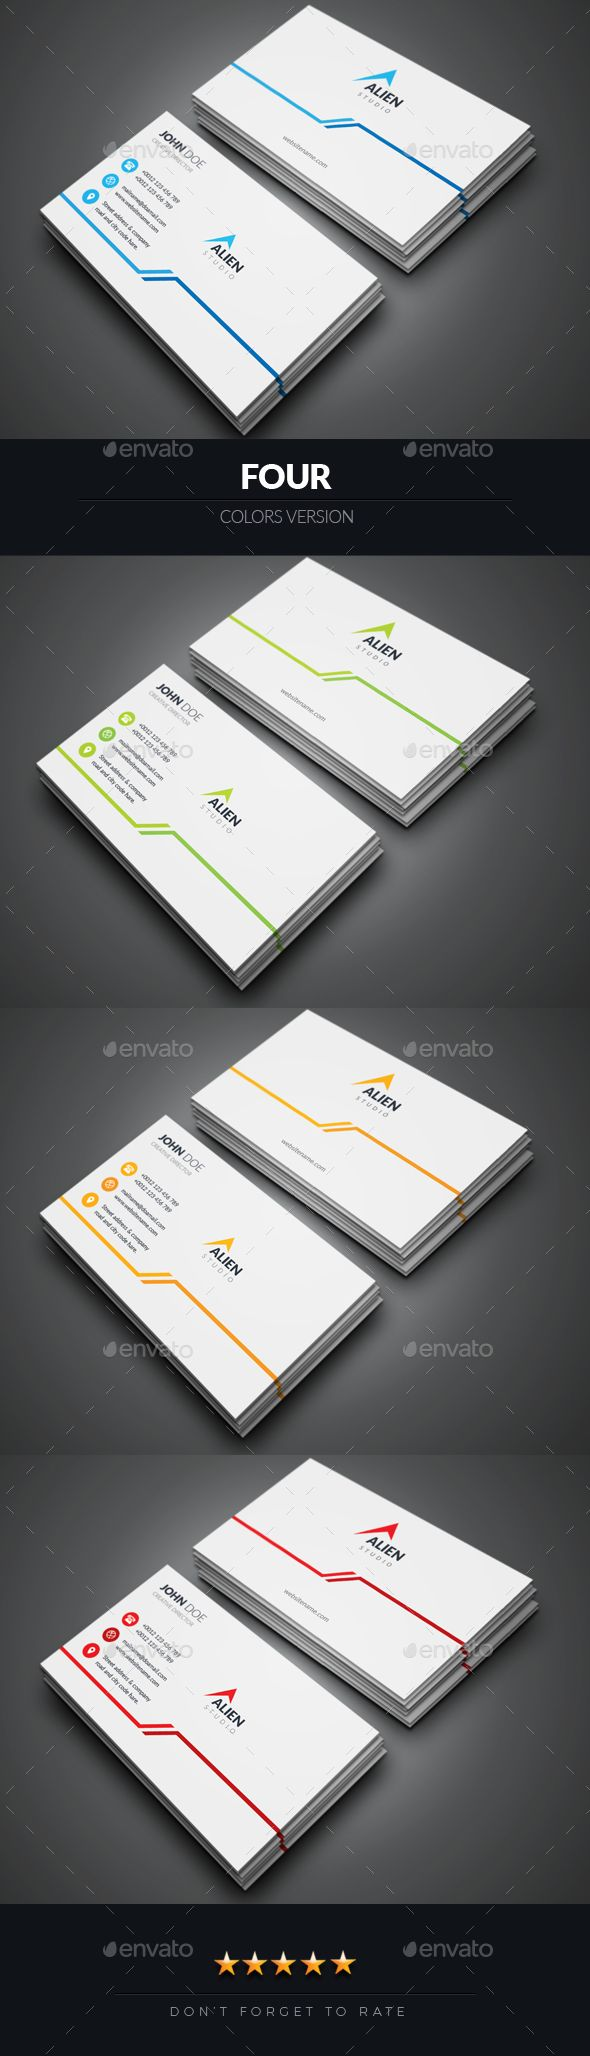 #Business Card - #Corporate Business #Cards Download here: https://graphicriver.net/item/business-card/18981133?ref=alena994